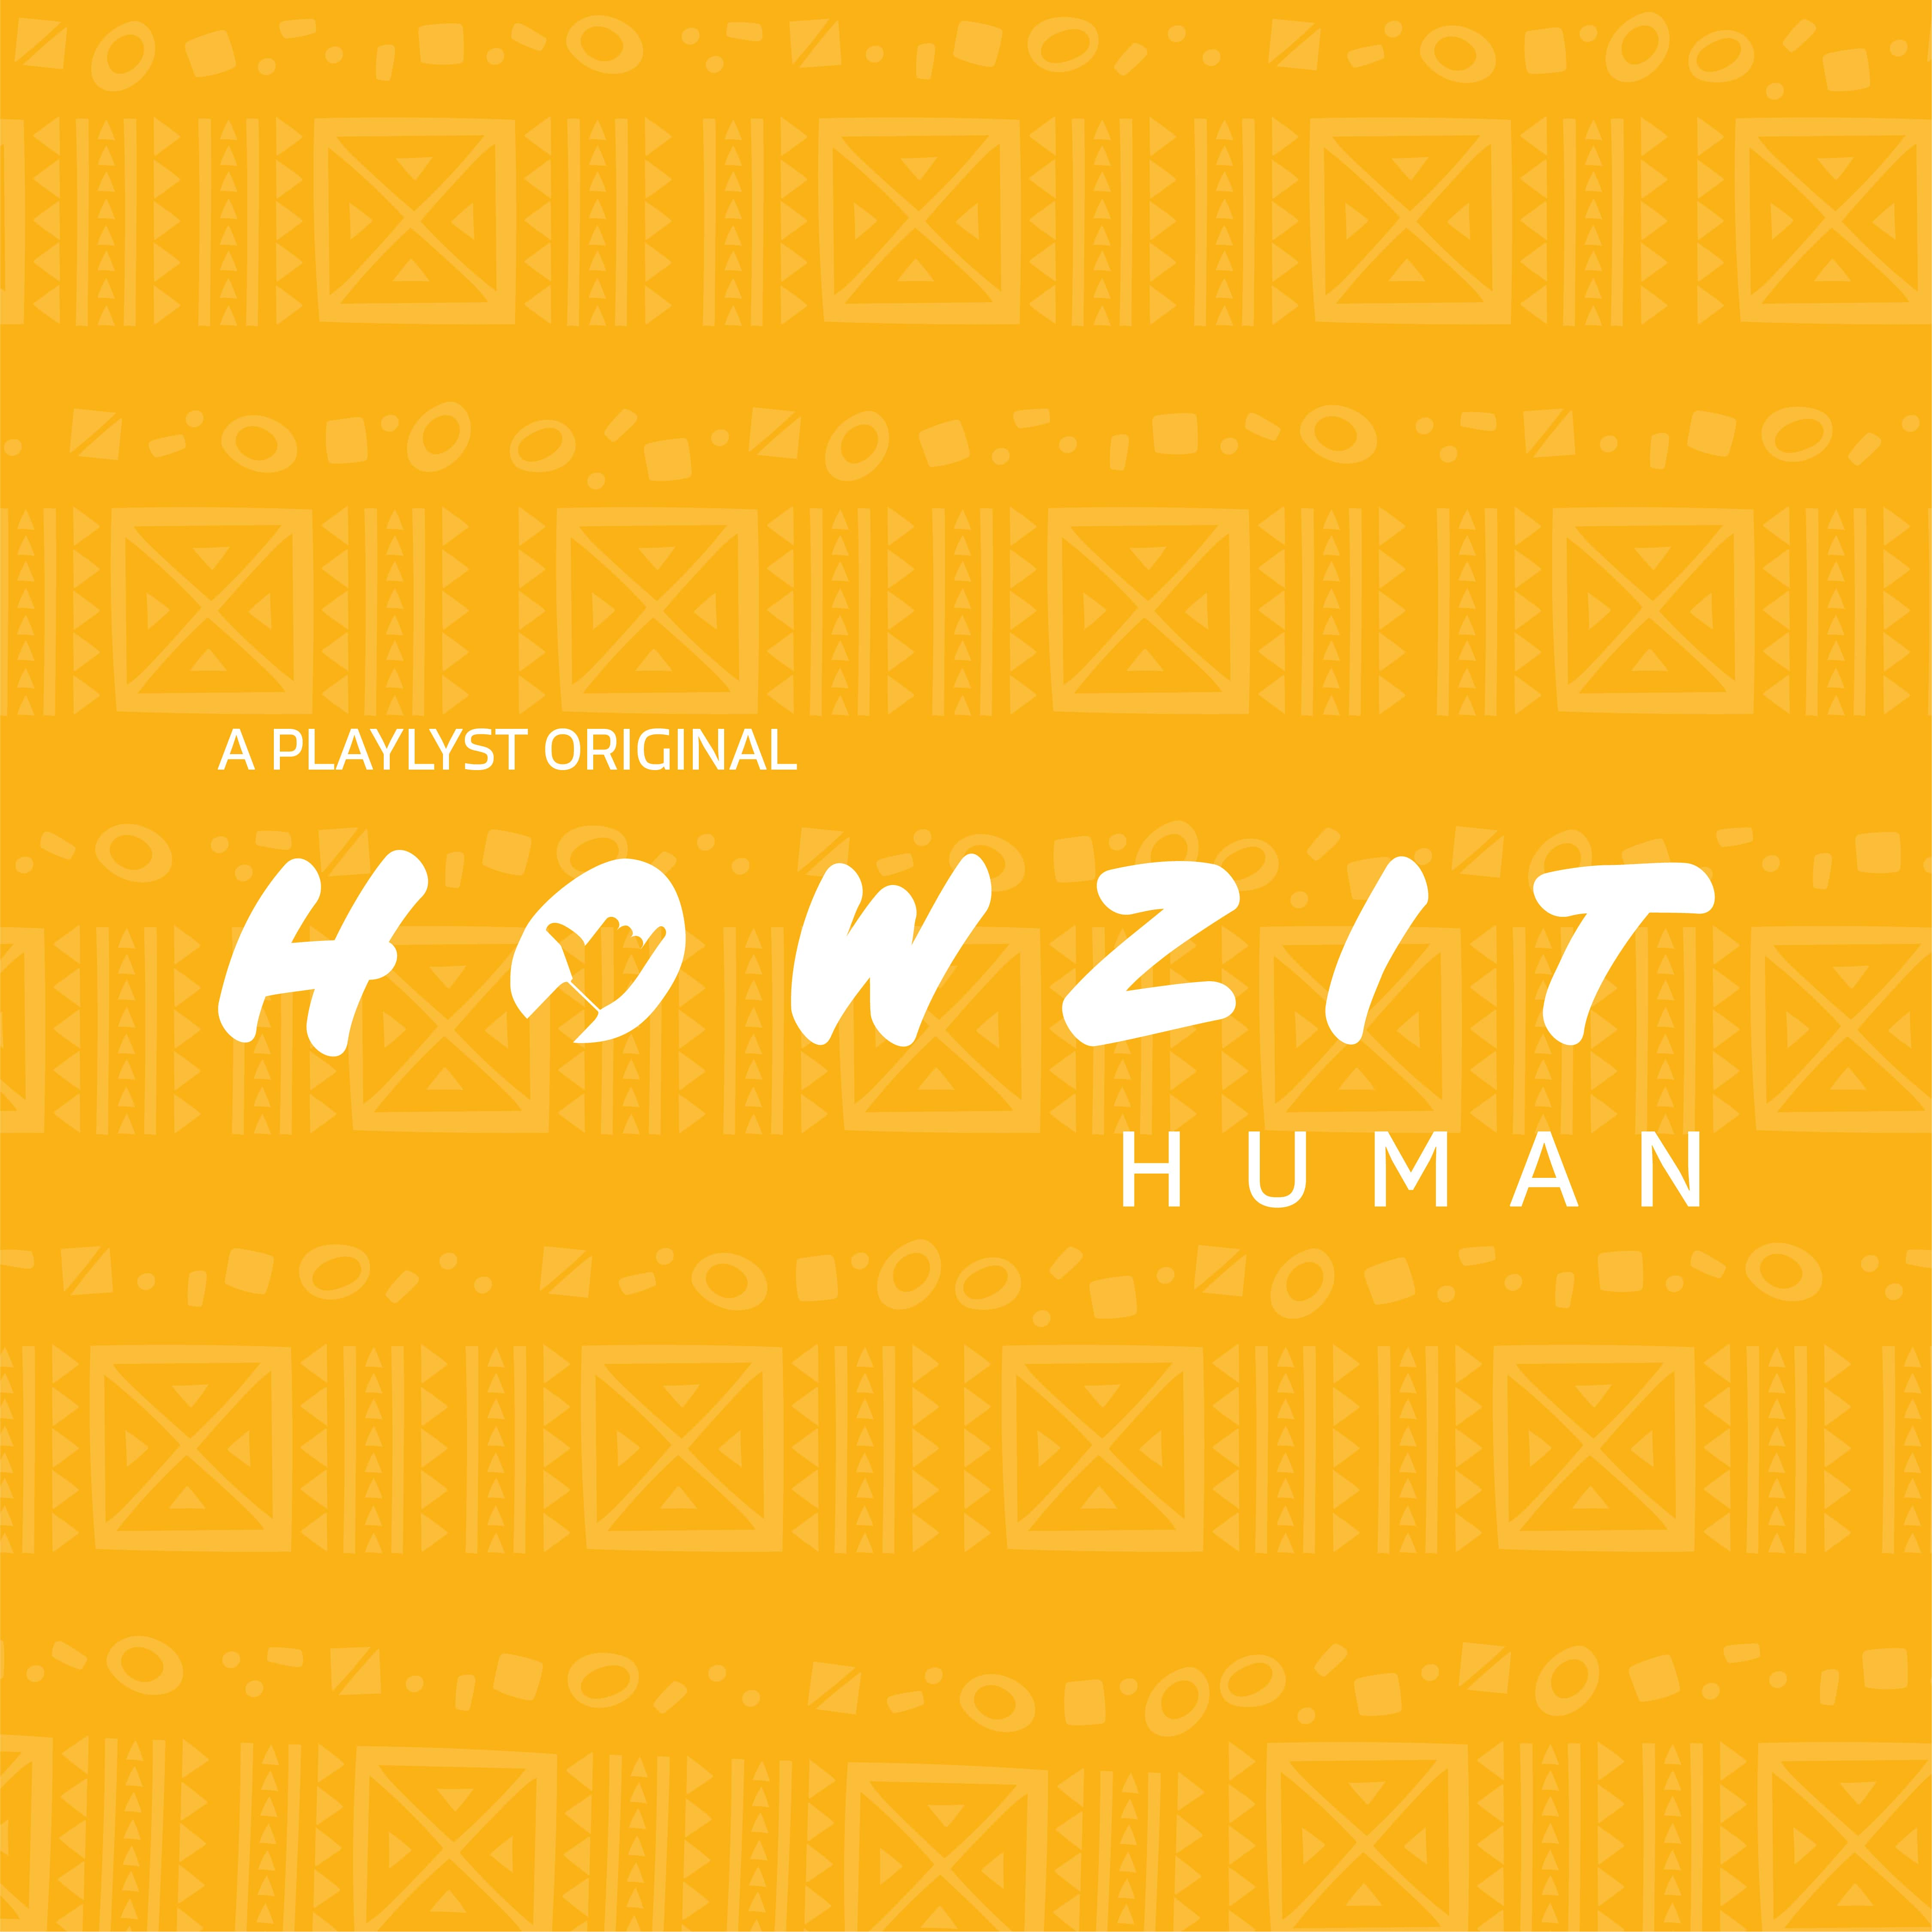 Howzit Human Cover Art by Khula Design Studio at Vancouver, Canada